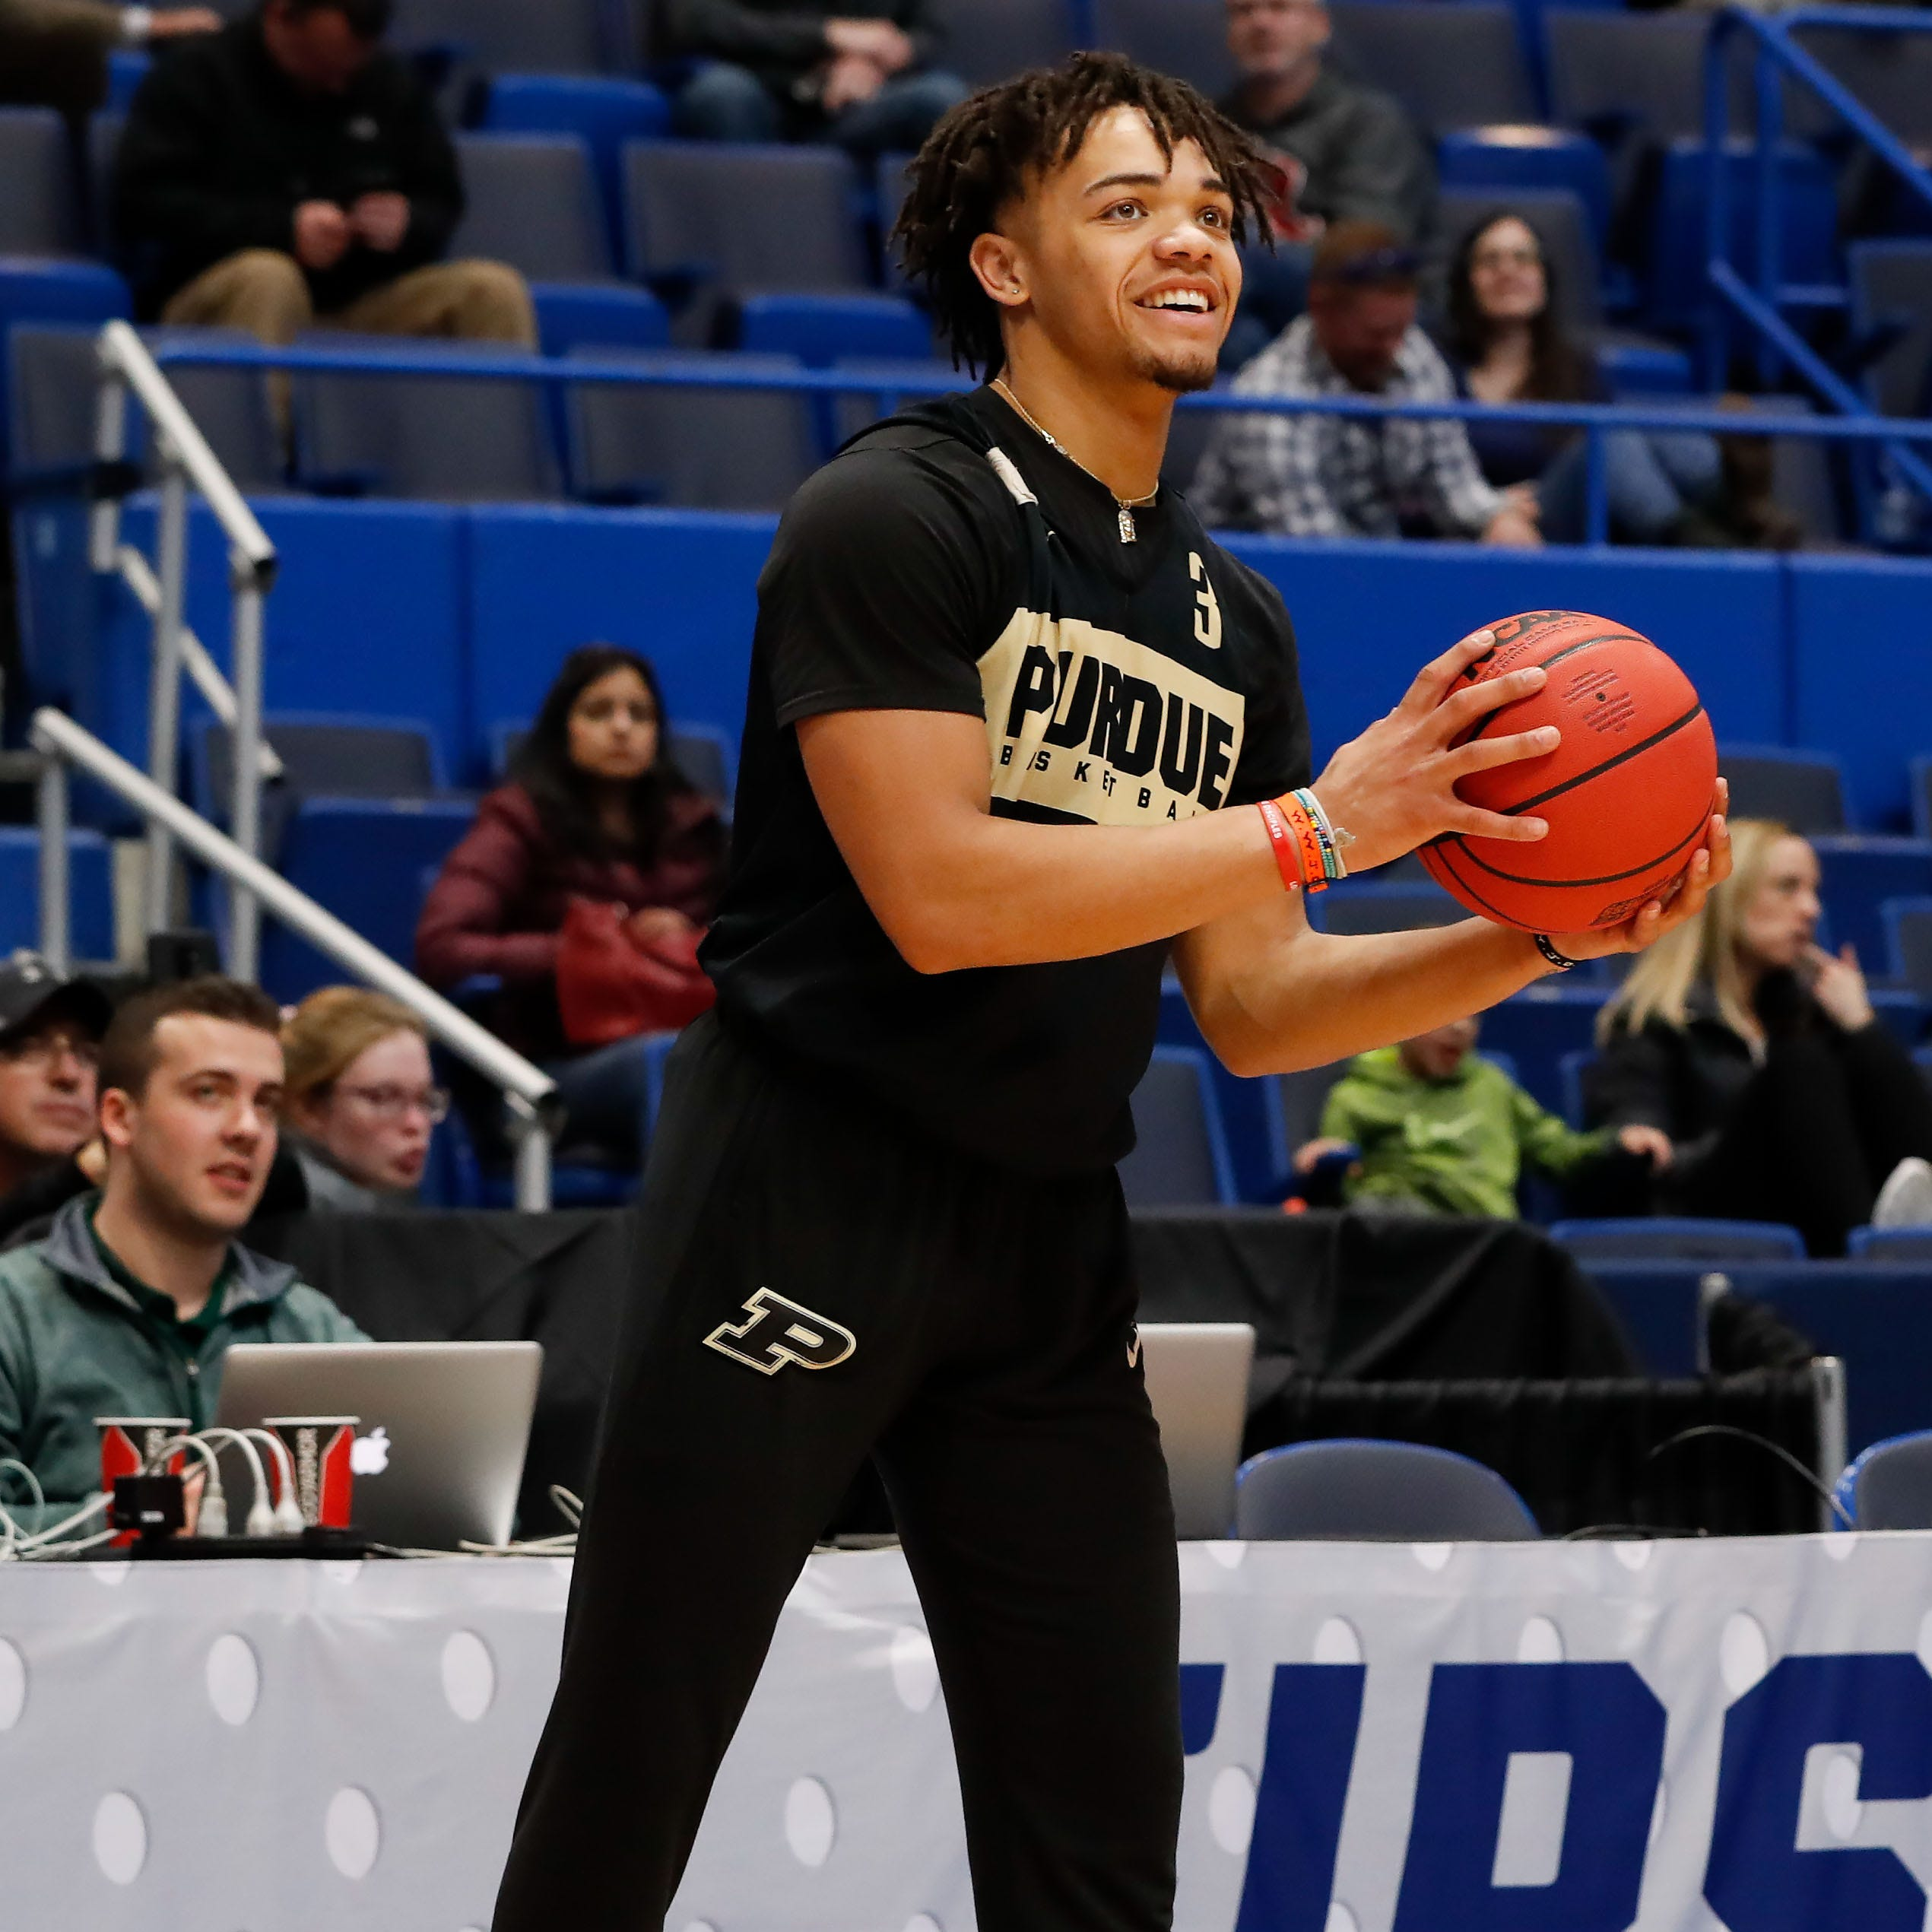 Purdue basketball braces for Old Dominion's defensive stand in NCAA Tournament opener